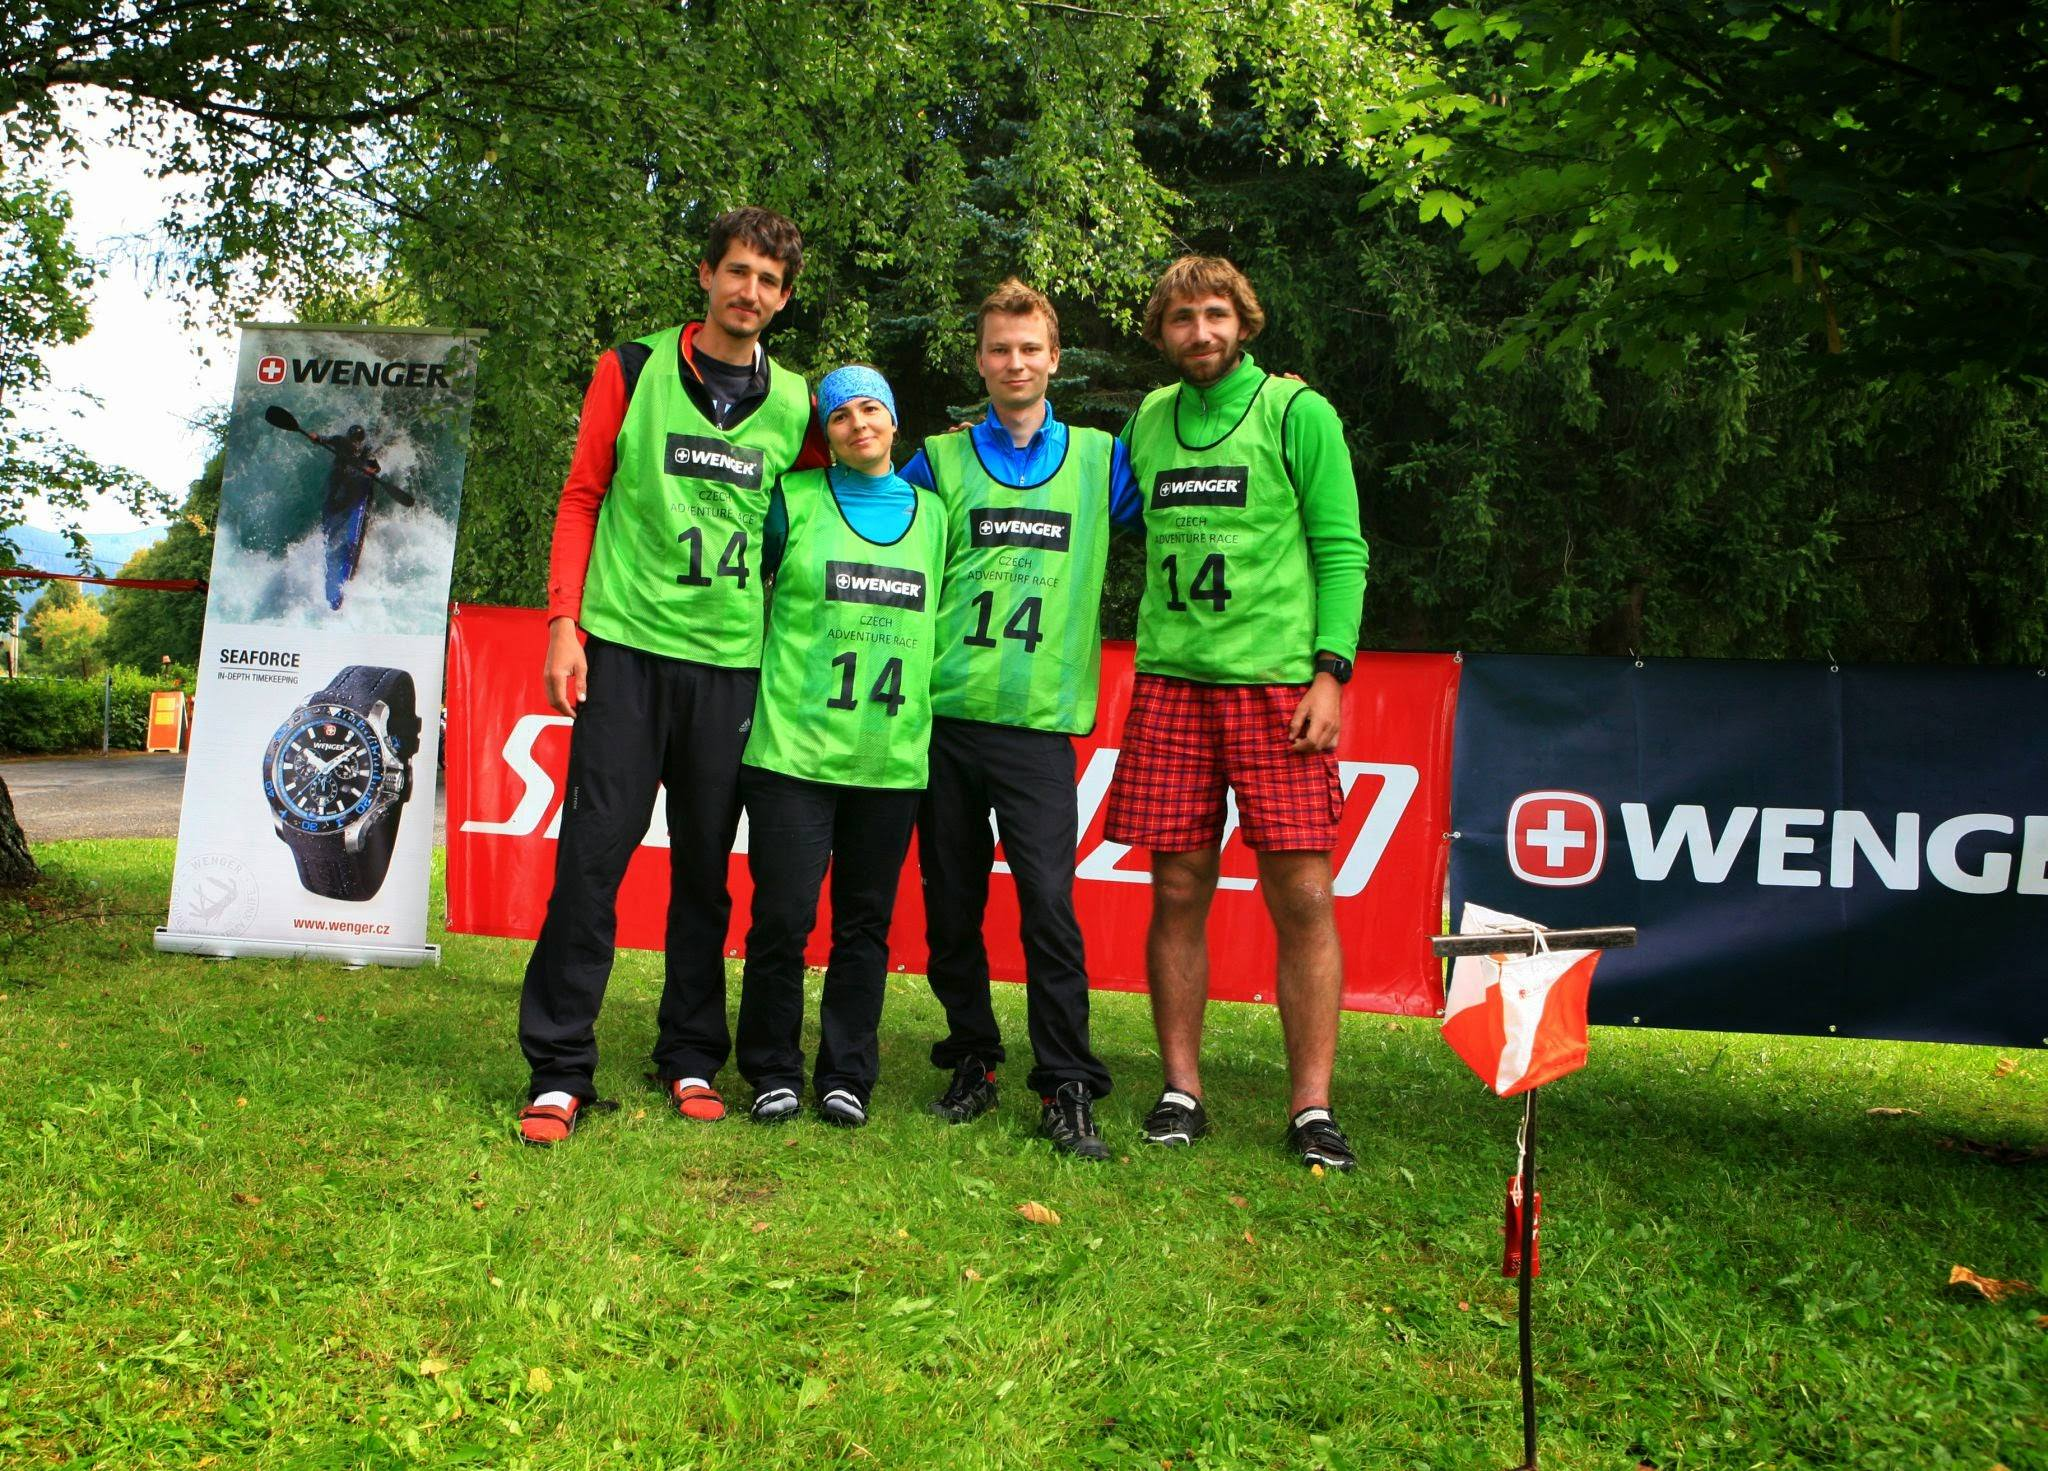 Czech Adventure Race